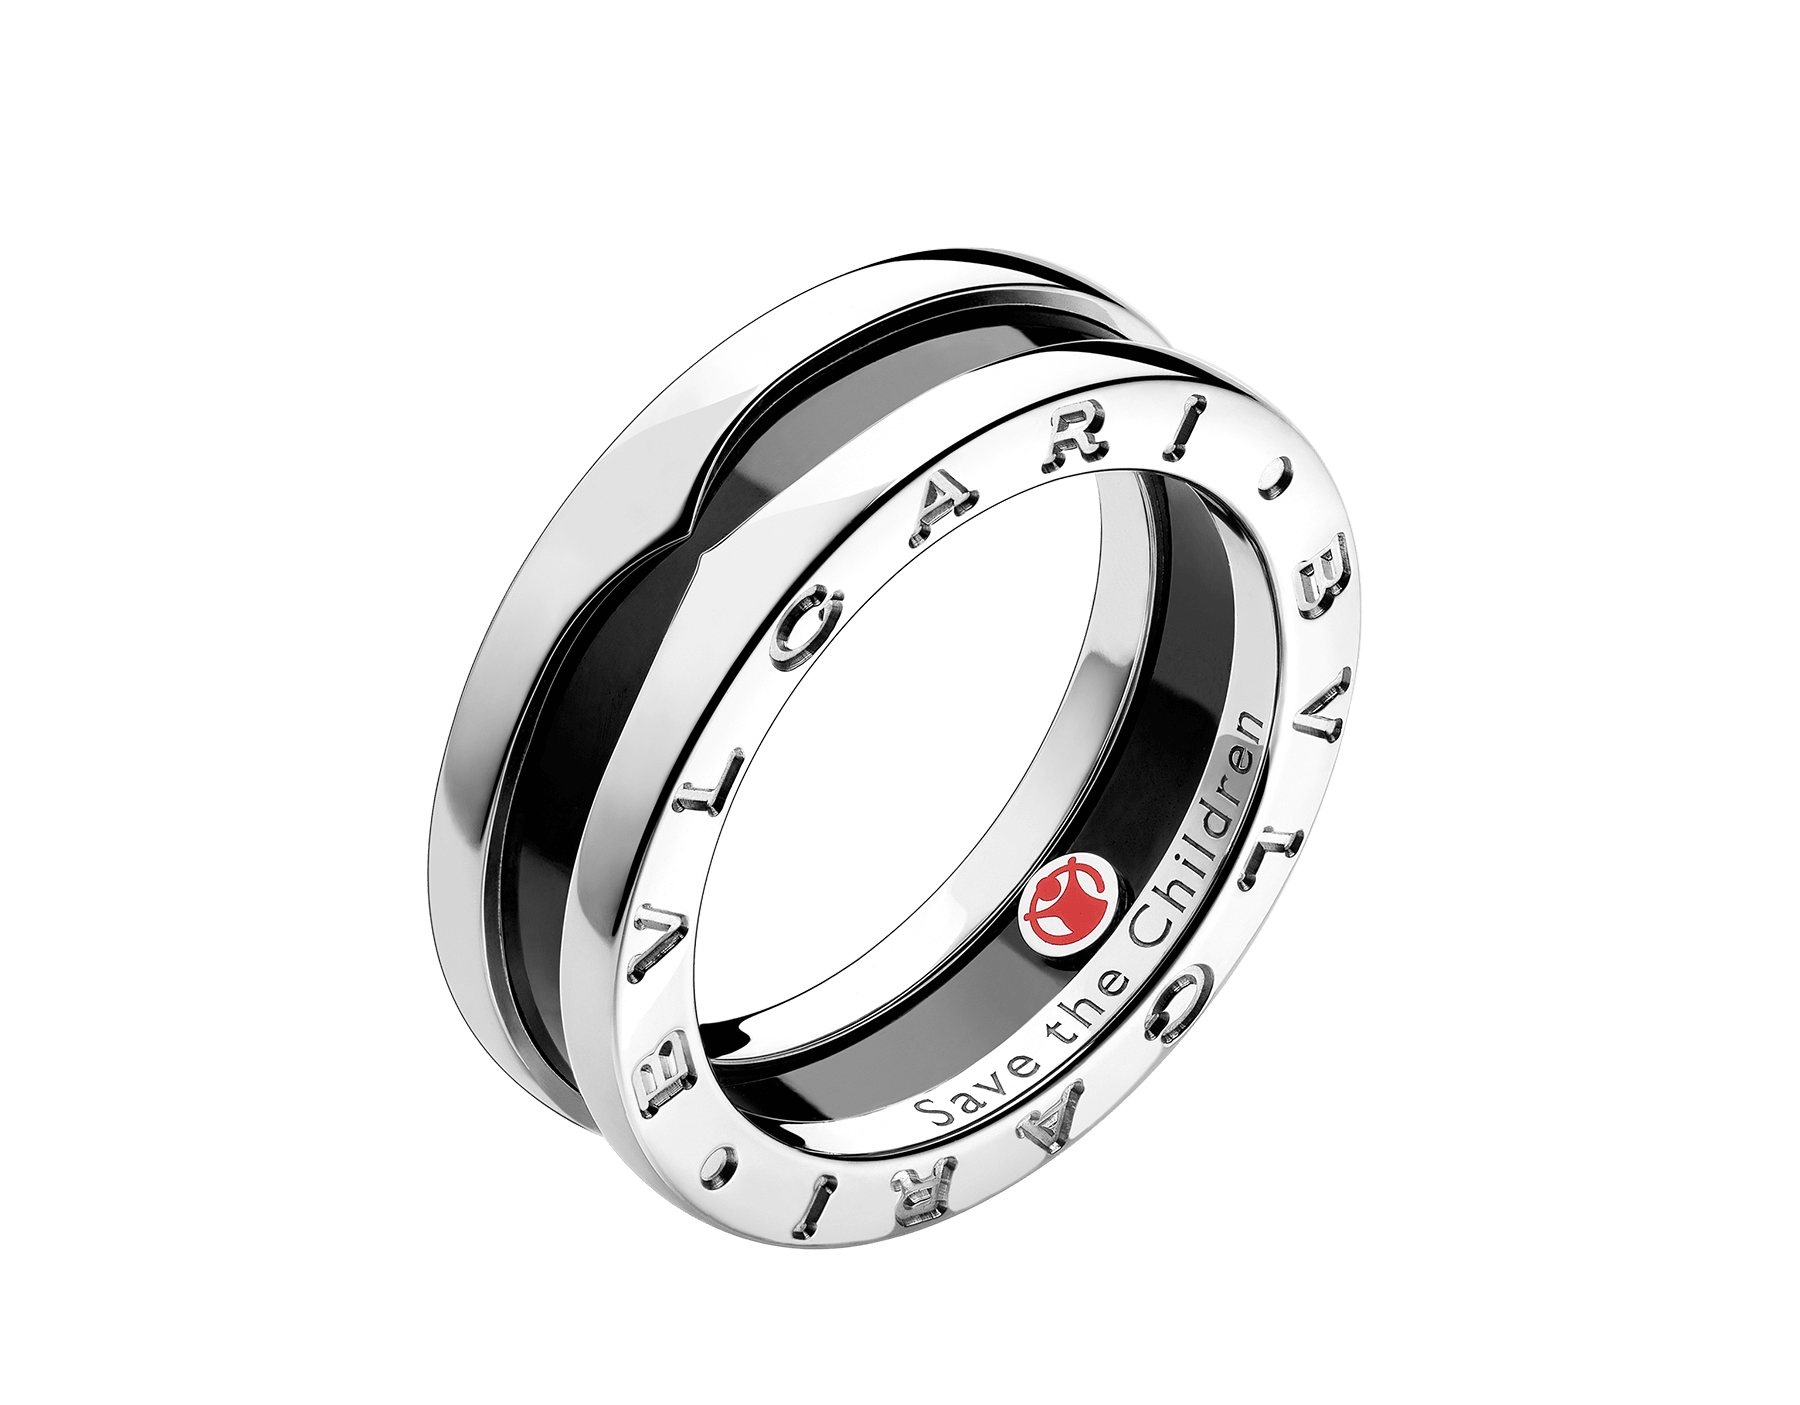 Save the Children one-band sterling silver ring with black ceramic AN855770 image 1